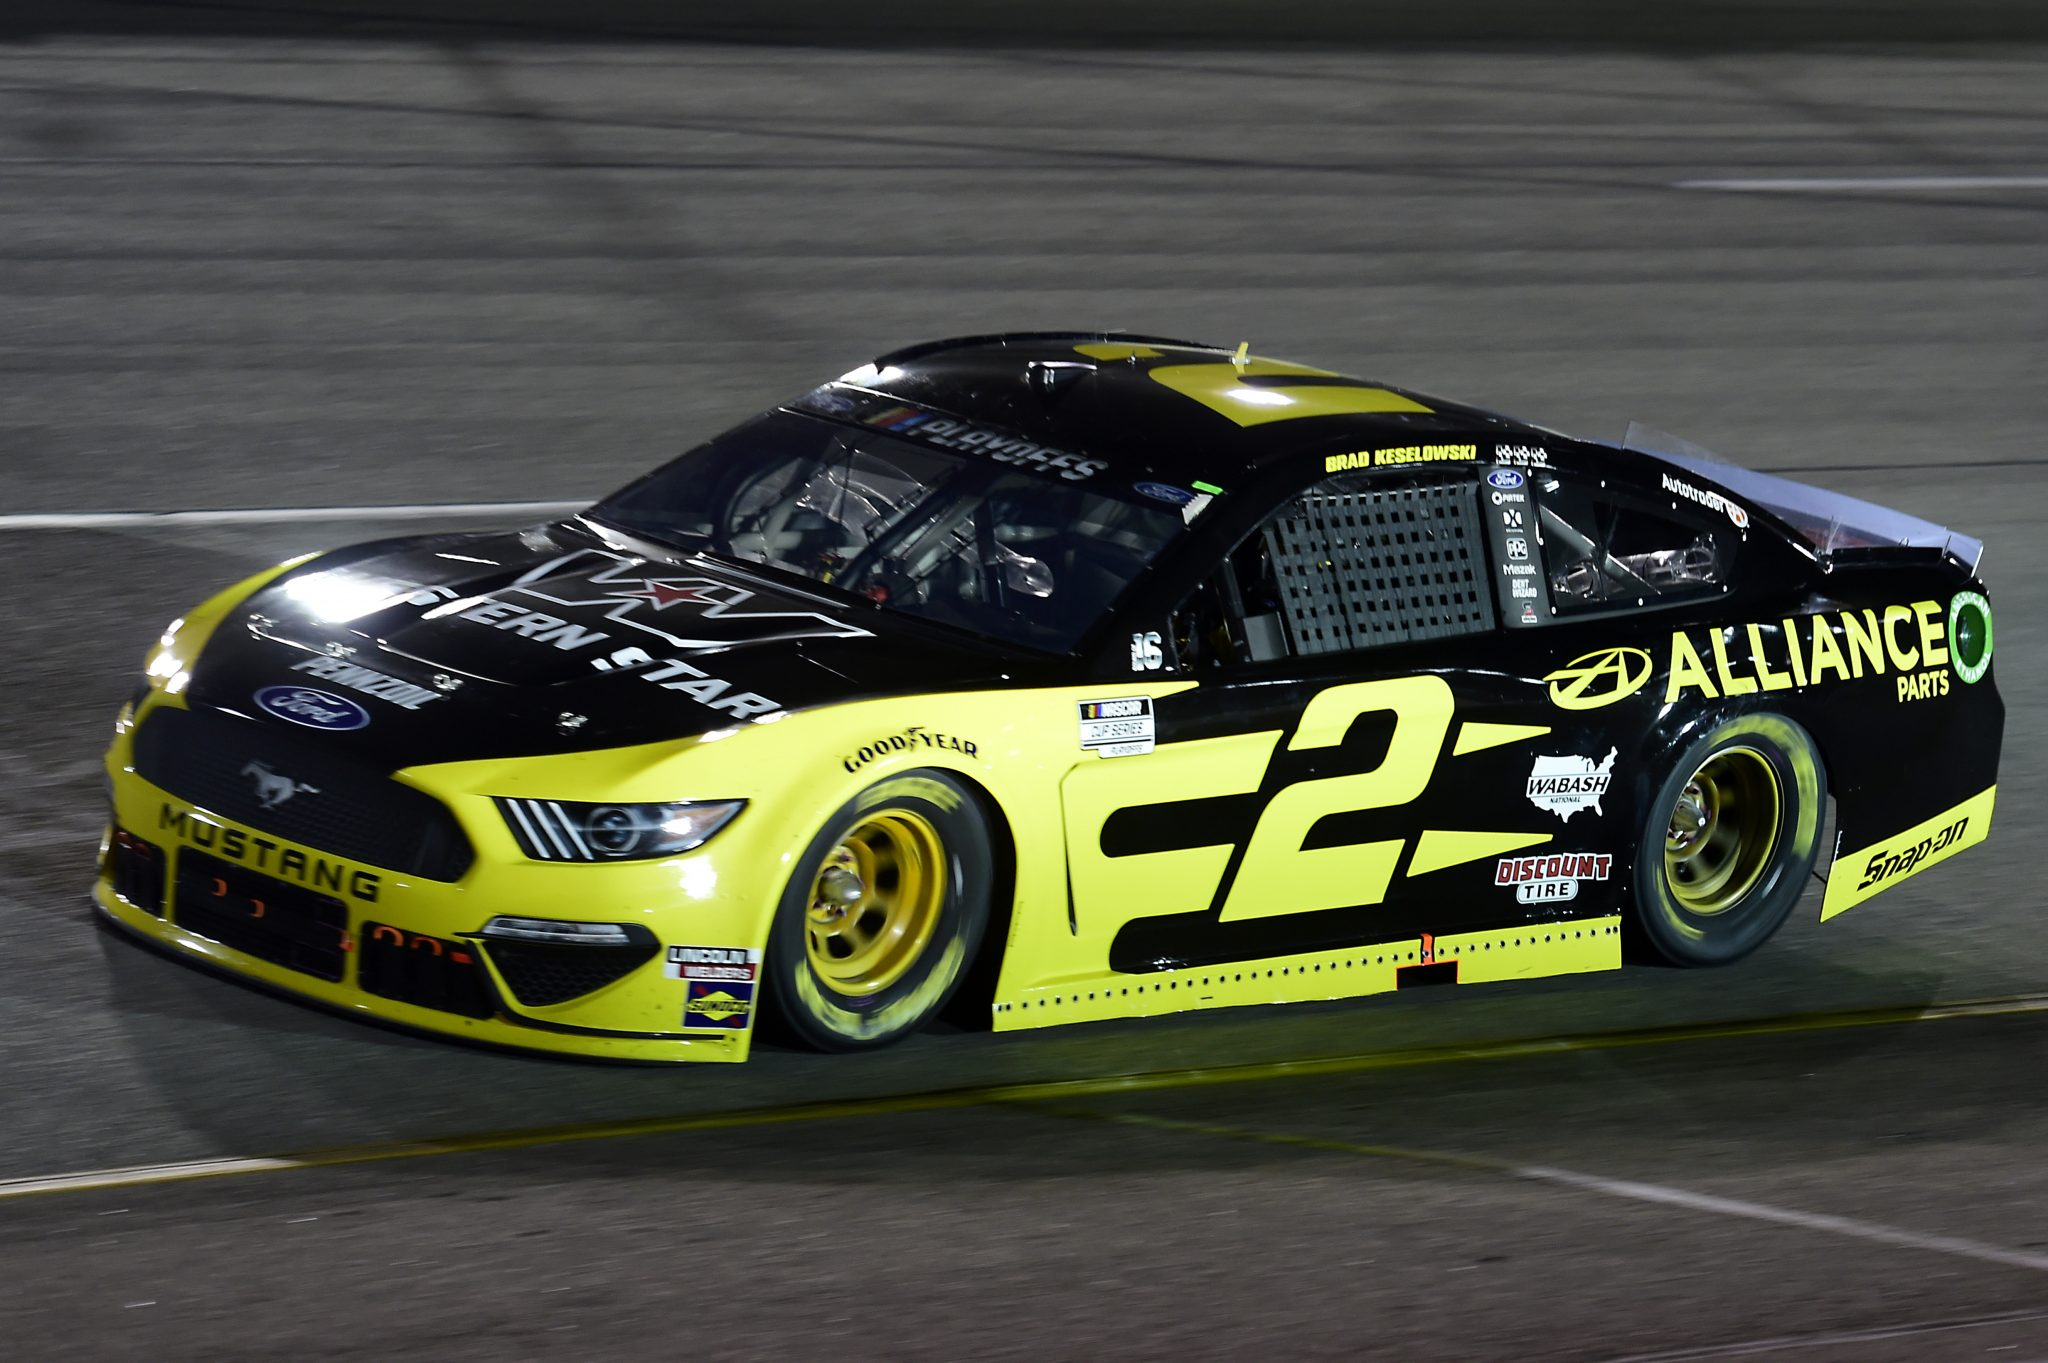 RICHMOND, VIRGINIA - SEPTEMBER 12: Brad Keselowski, driver of the #2 Western Star/Alliance Parts Ford, drives during the NASCAR Cup Series Federated Auto Parts 400 at Richmond Raceway on September 12, 2020 in Richmond, Virginia. (Photo by Jared C. Tilton/Getty Images) | Getty Images